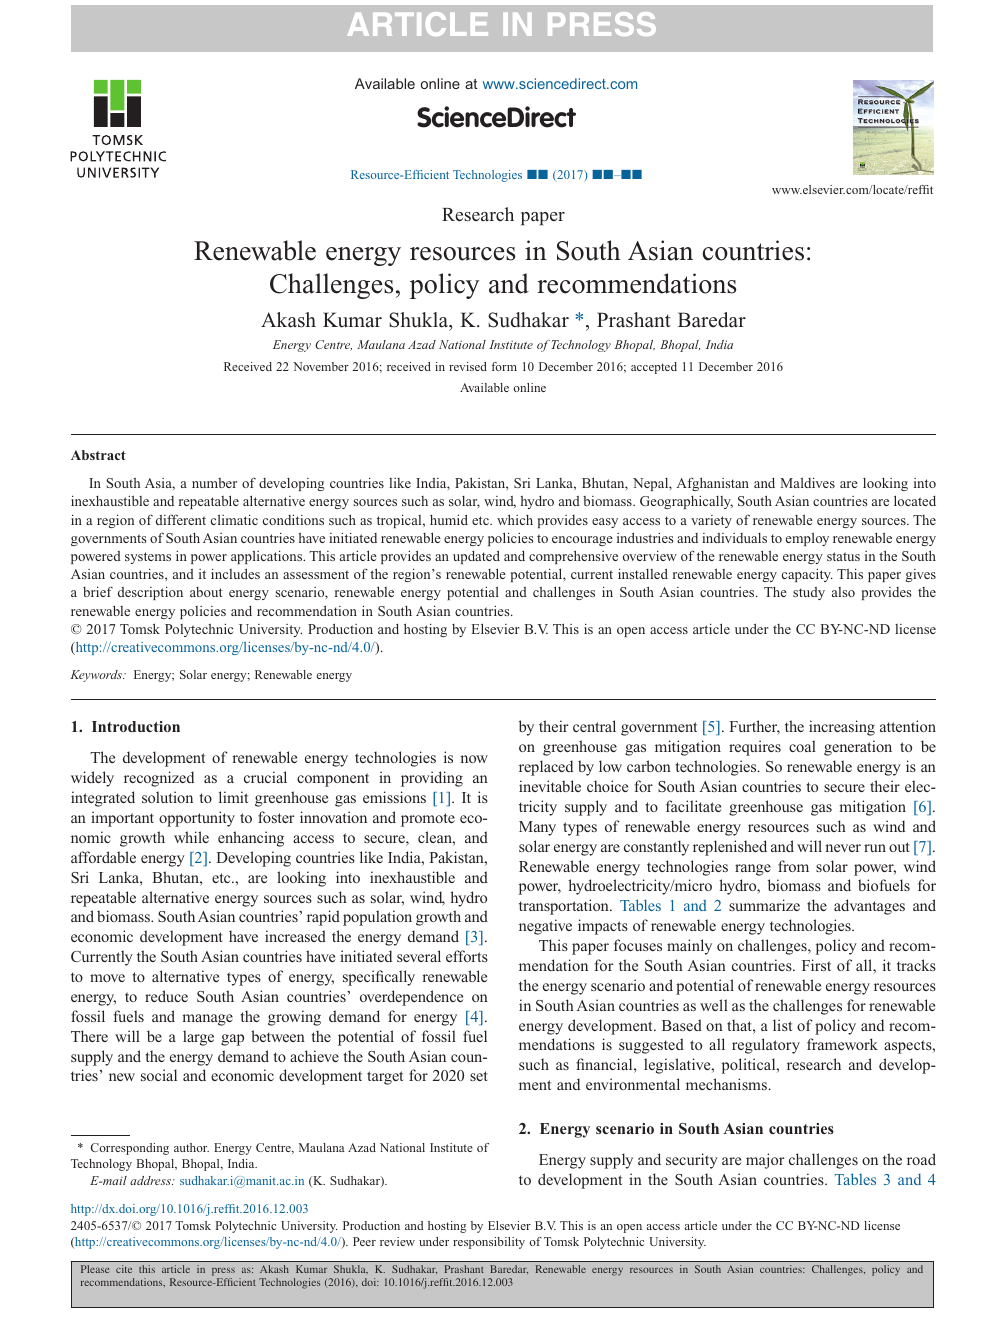 Renewable energy resources in South Asian countries: Challenges